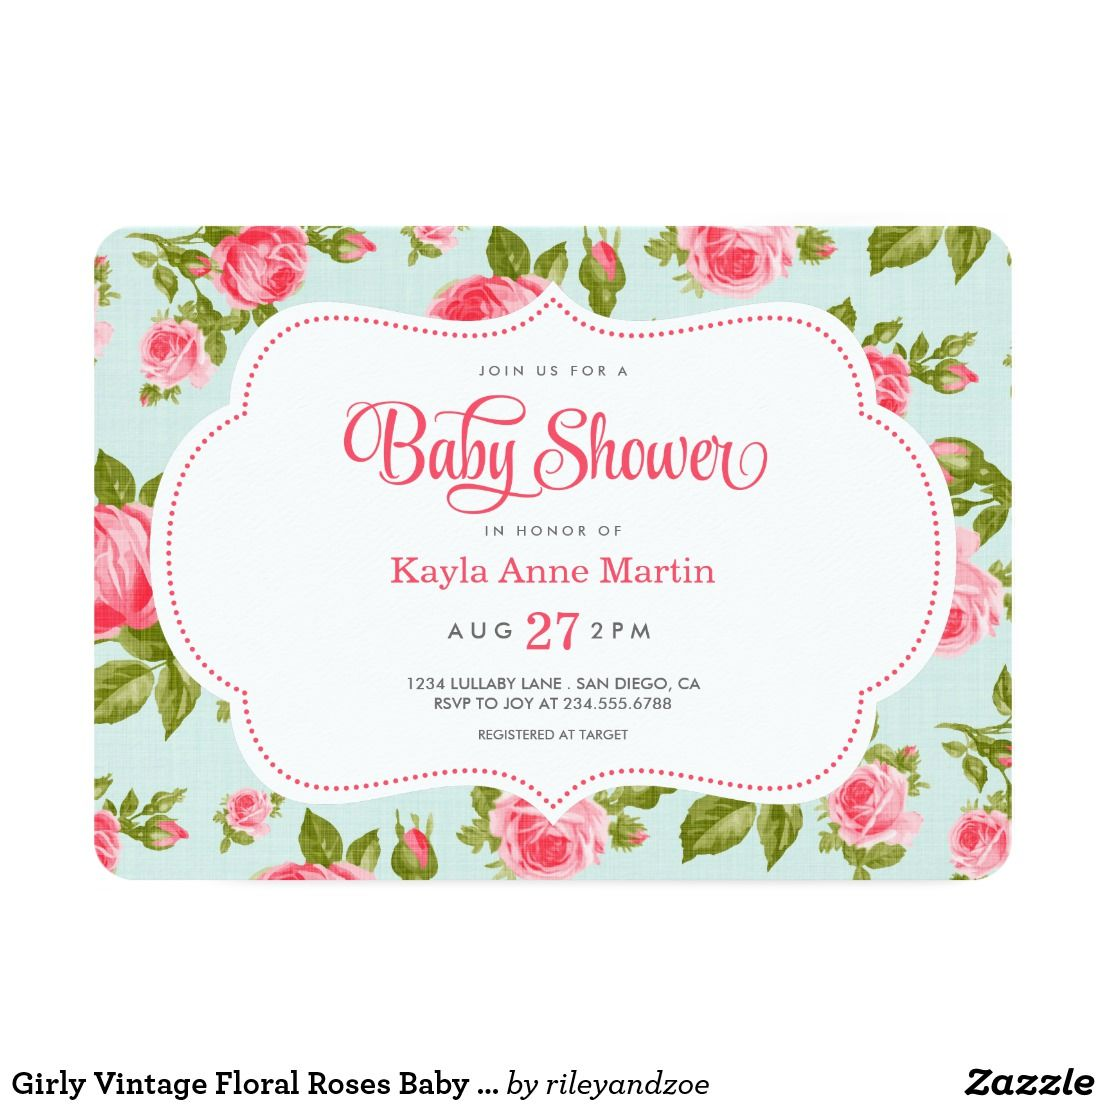 Girly Vintage Floral Roses Baby Shower Invitation Sweet and modern ...